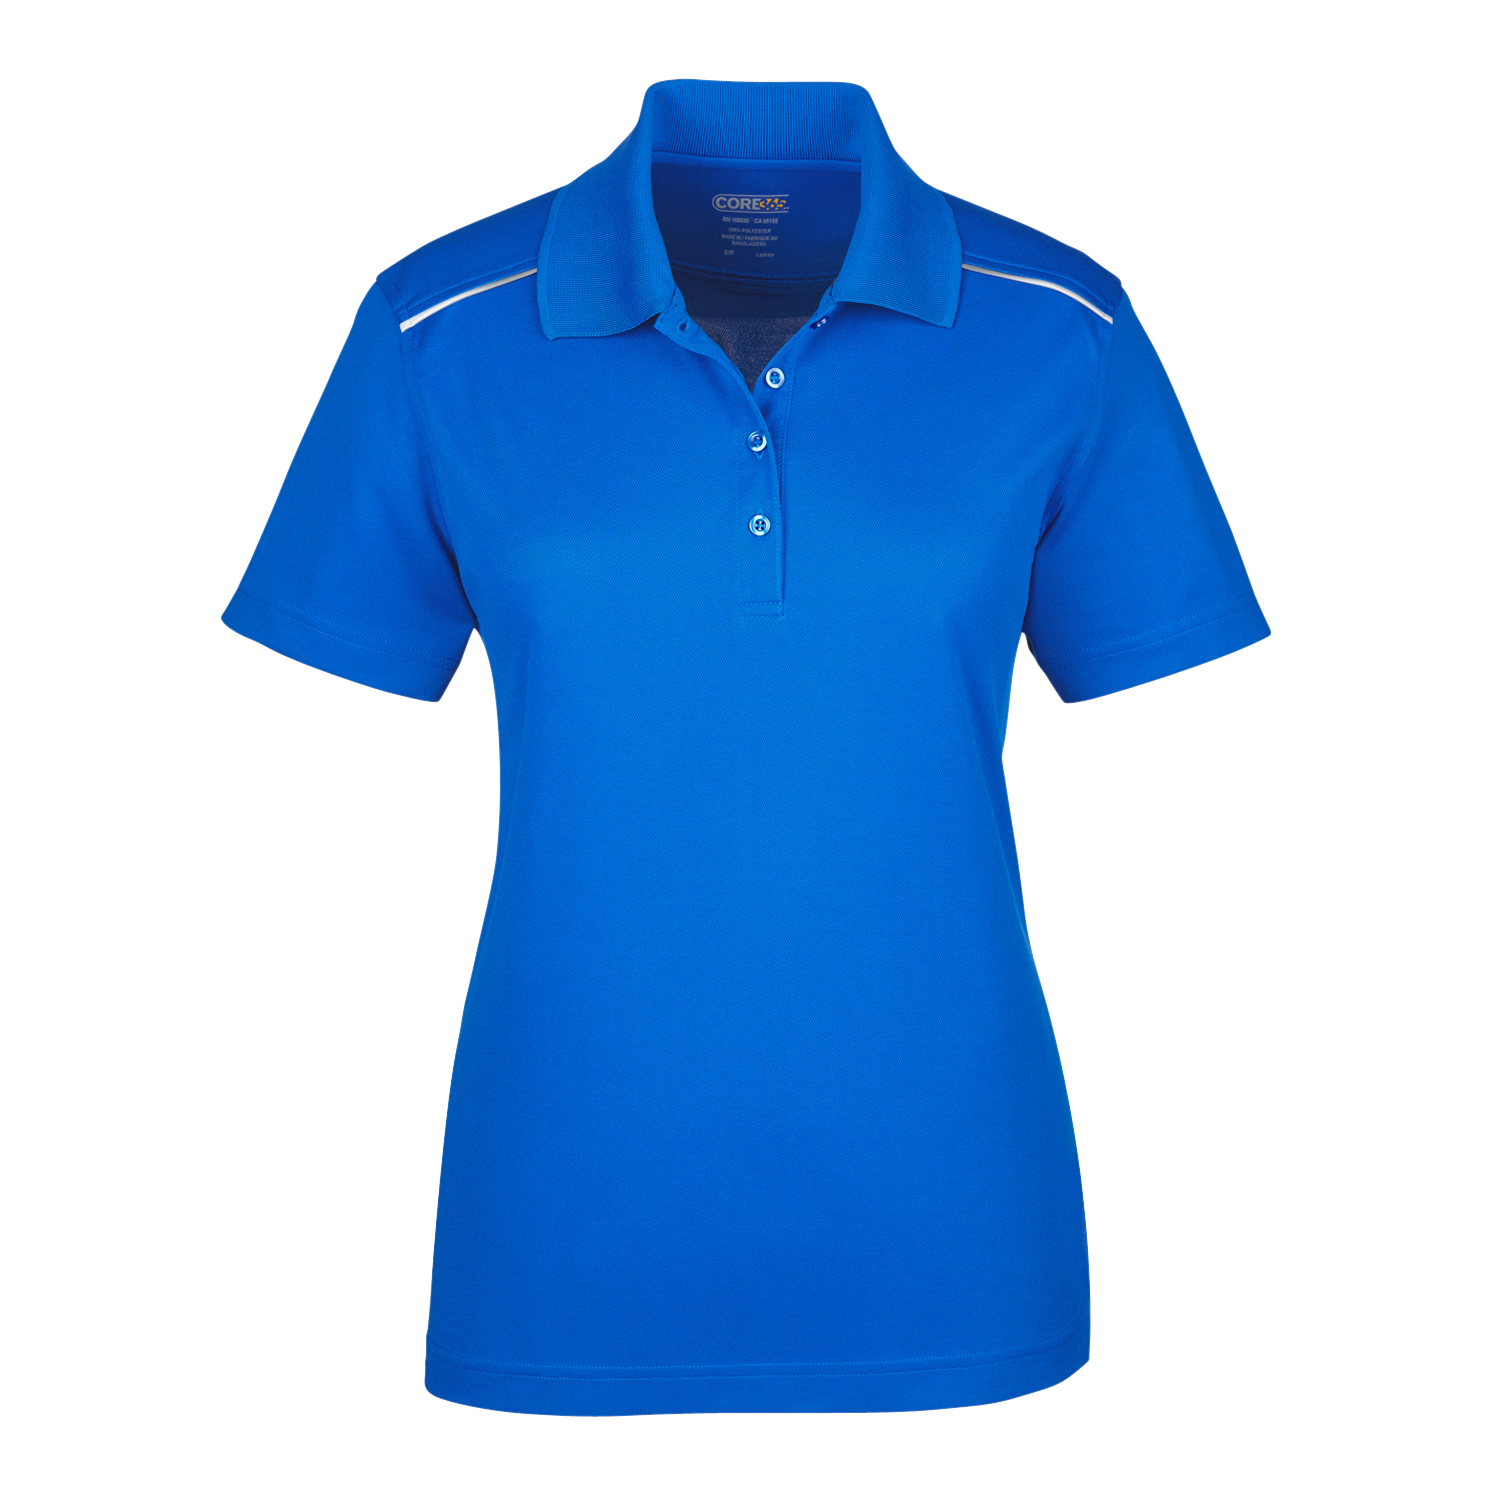 D1965W Ladies Radiant Performance Pique Polo